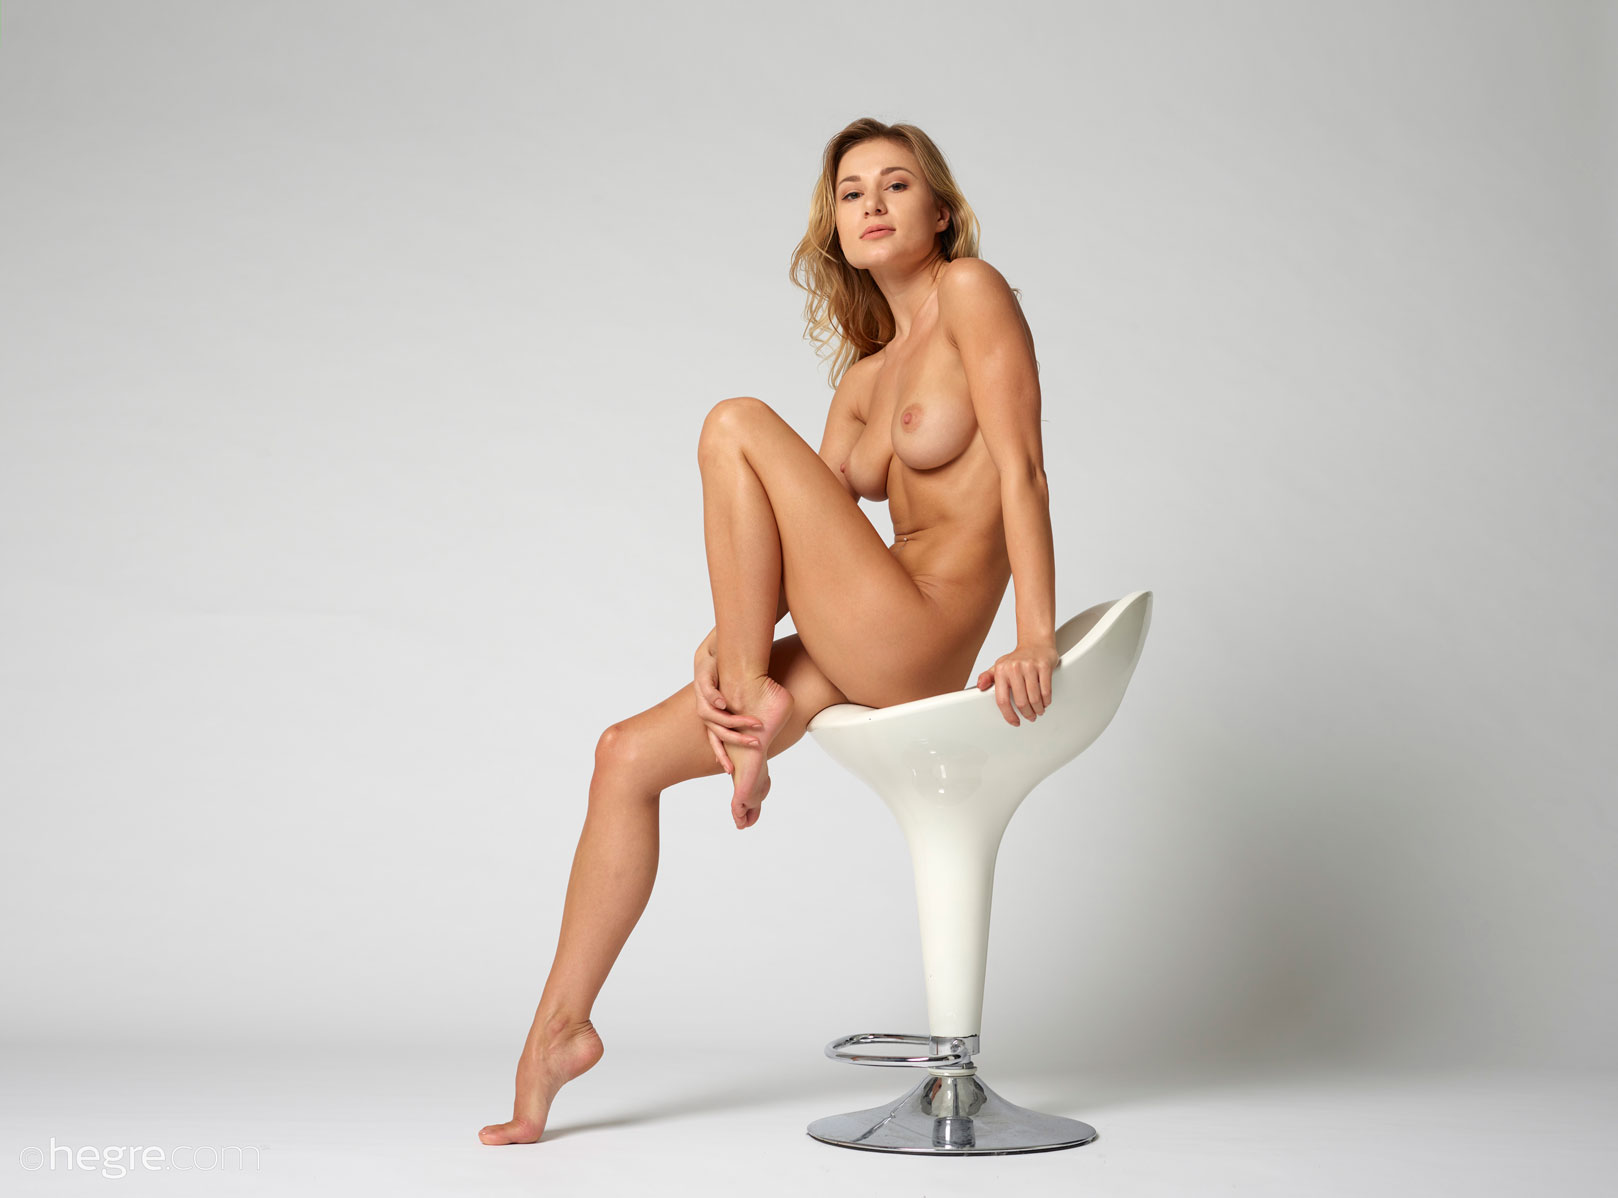 Girs on chairs naked something